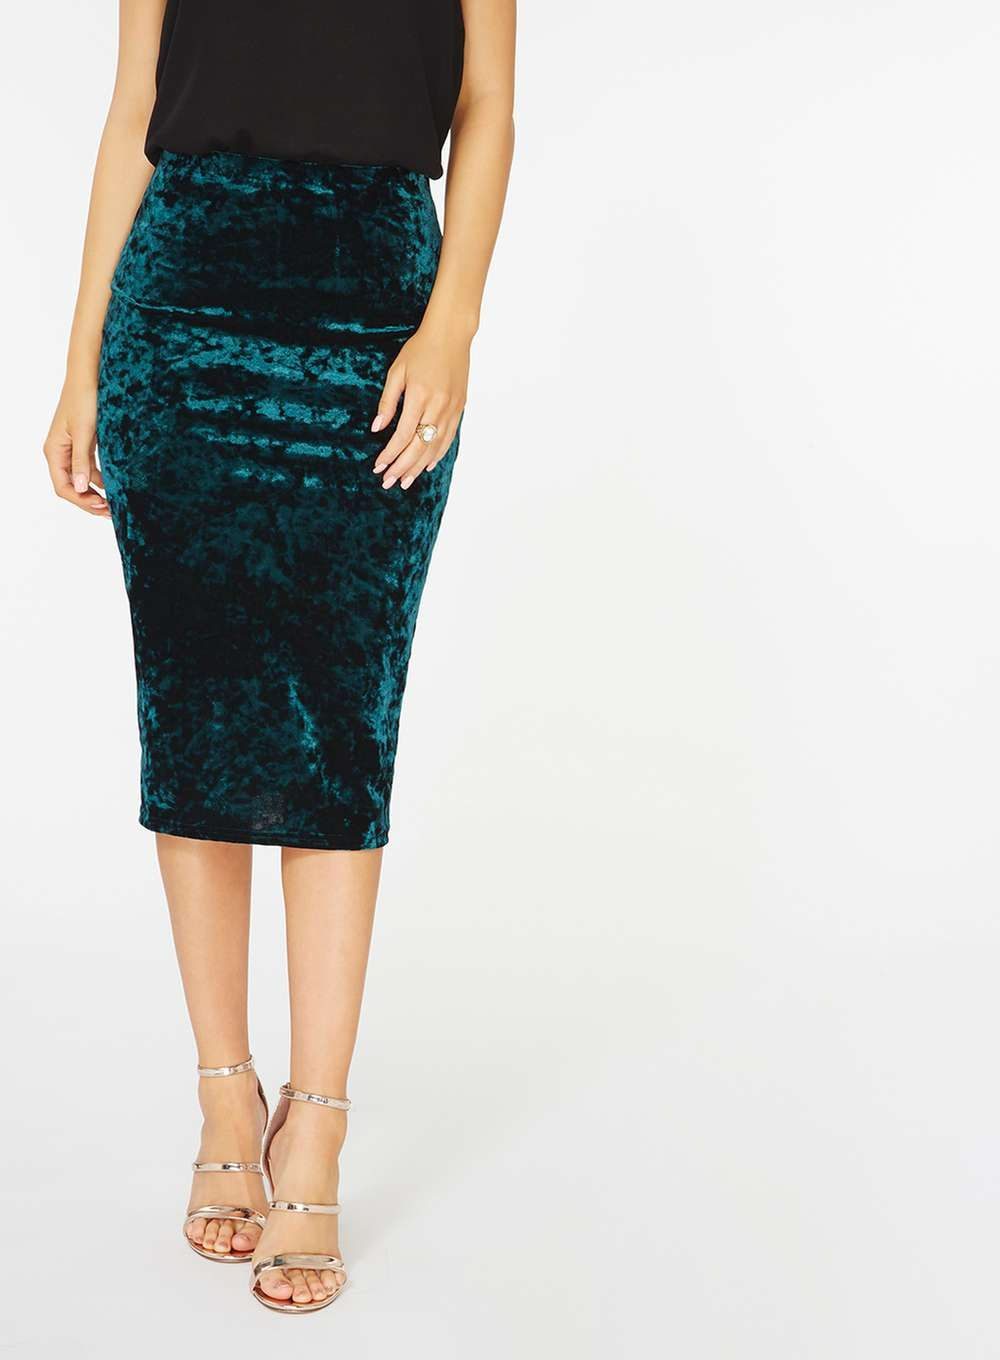 88a63e0a22 Green Crushed Velvet Pencil Skirt Pencil Skirt Outfits, Pencil Skirts,  Sharp Pencils, Velvet